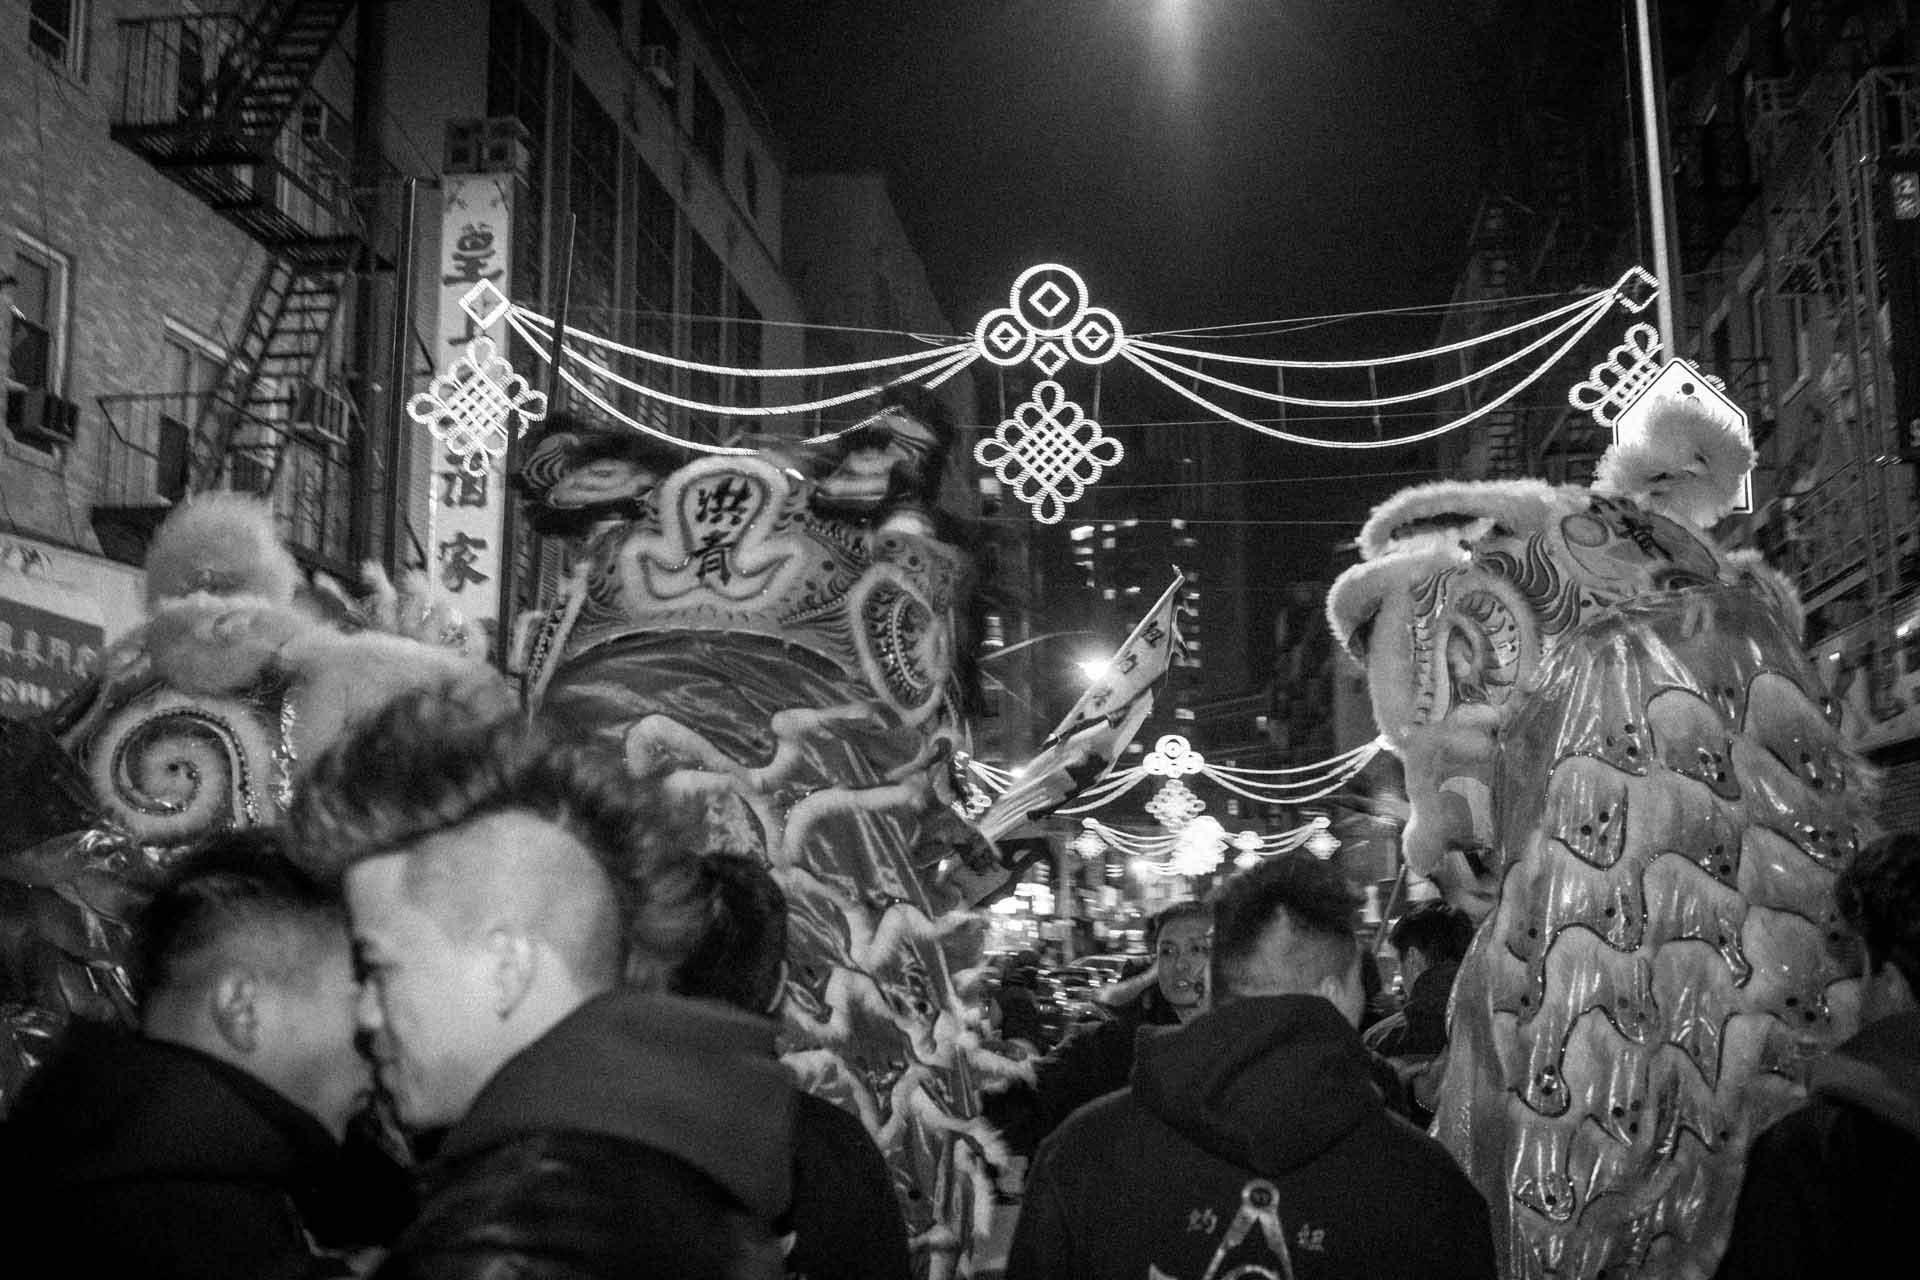 ©Ken Shung - Year of the Horse. black and white-young Chinese men celebrating Chinese New Year, China Town, NYC